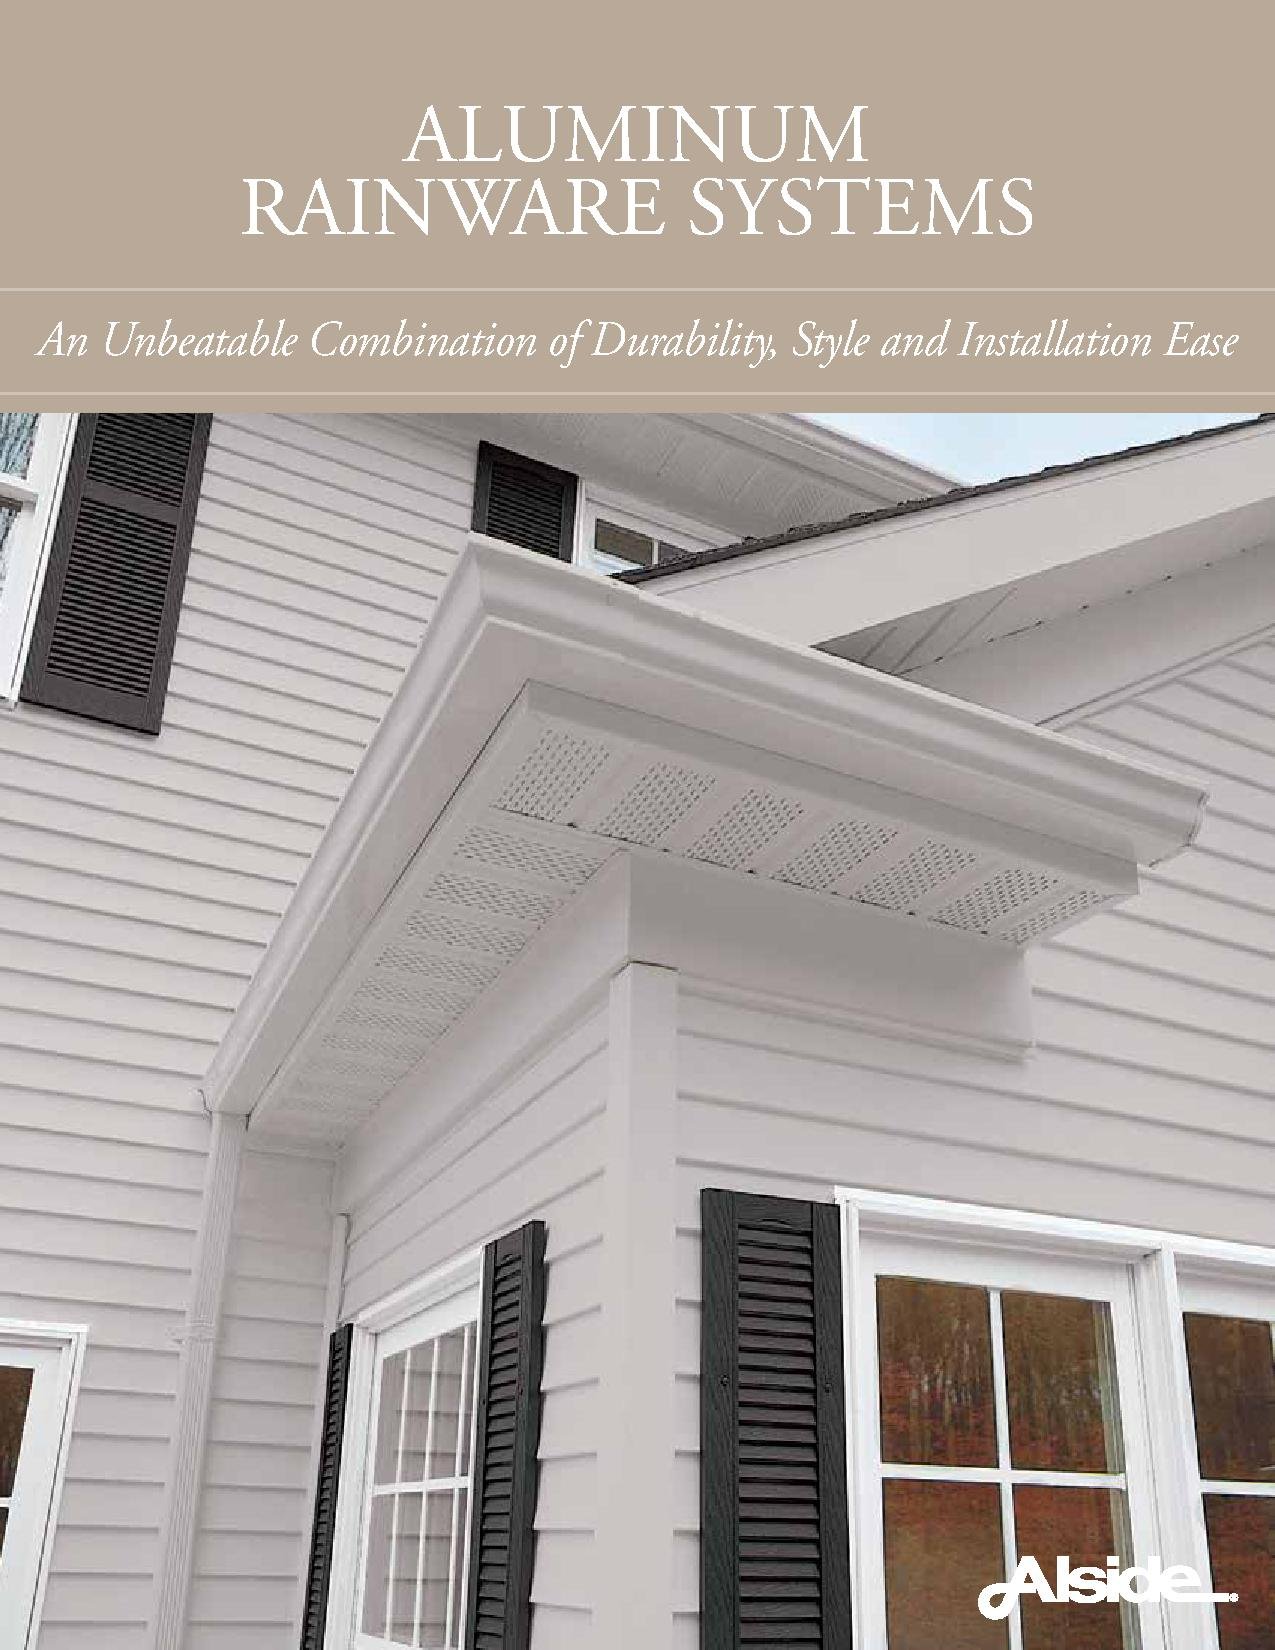 alum-rainware-sell-sheet-rev-1